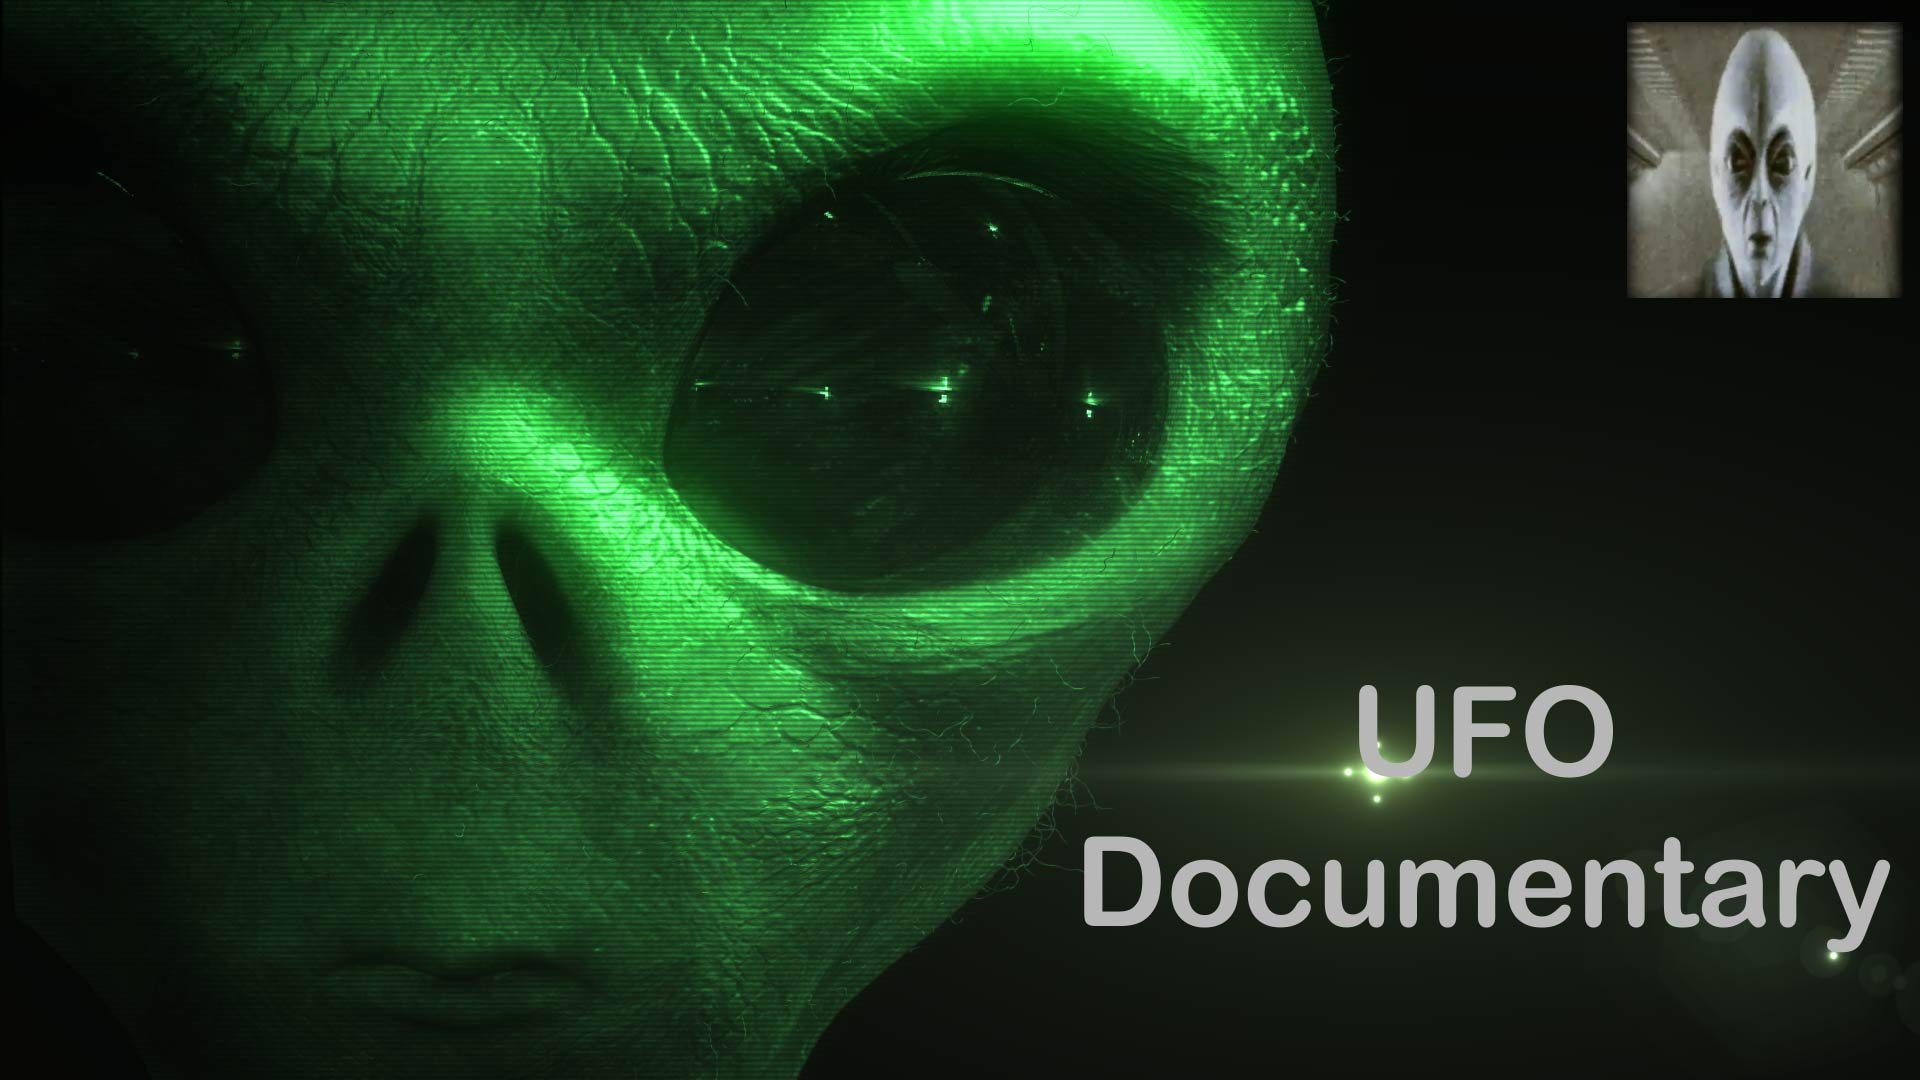 UFO Sightings Documentary June 22nd 2018